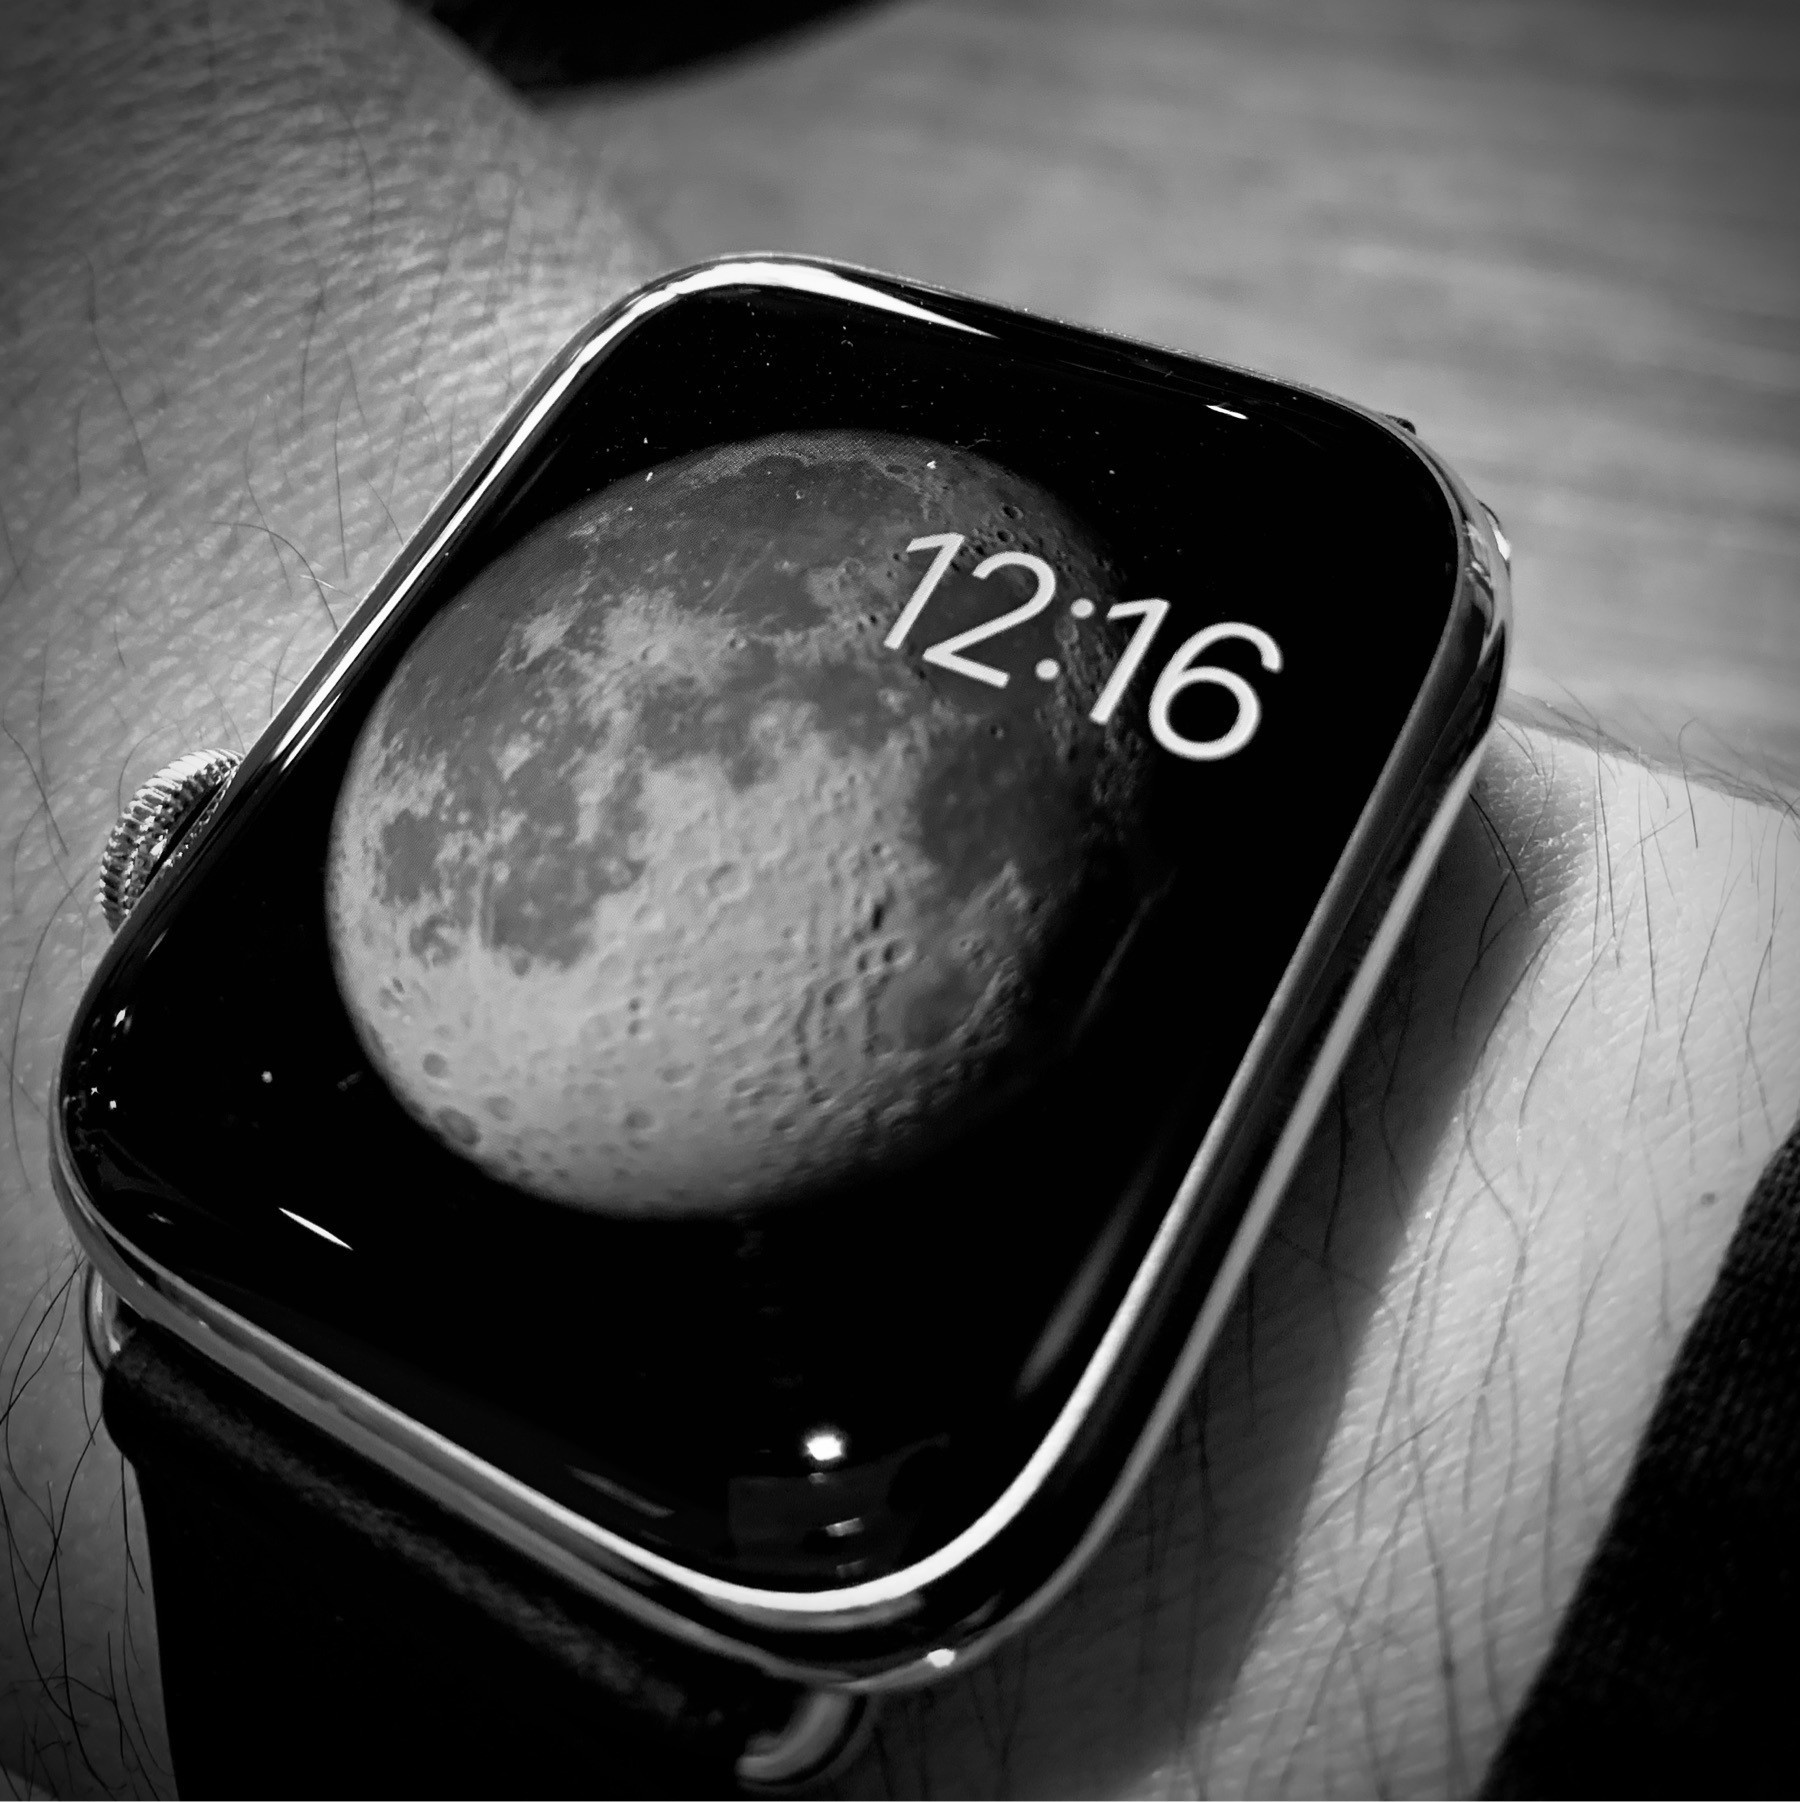 Apple Watch with Moon watch face.